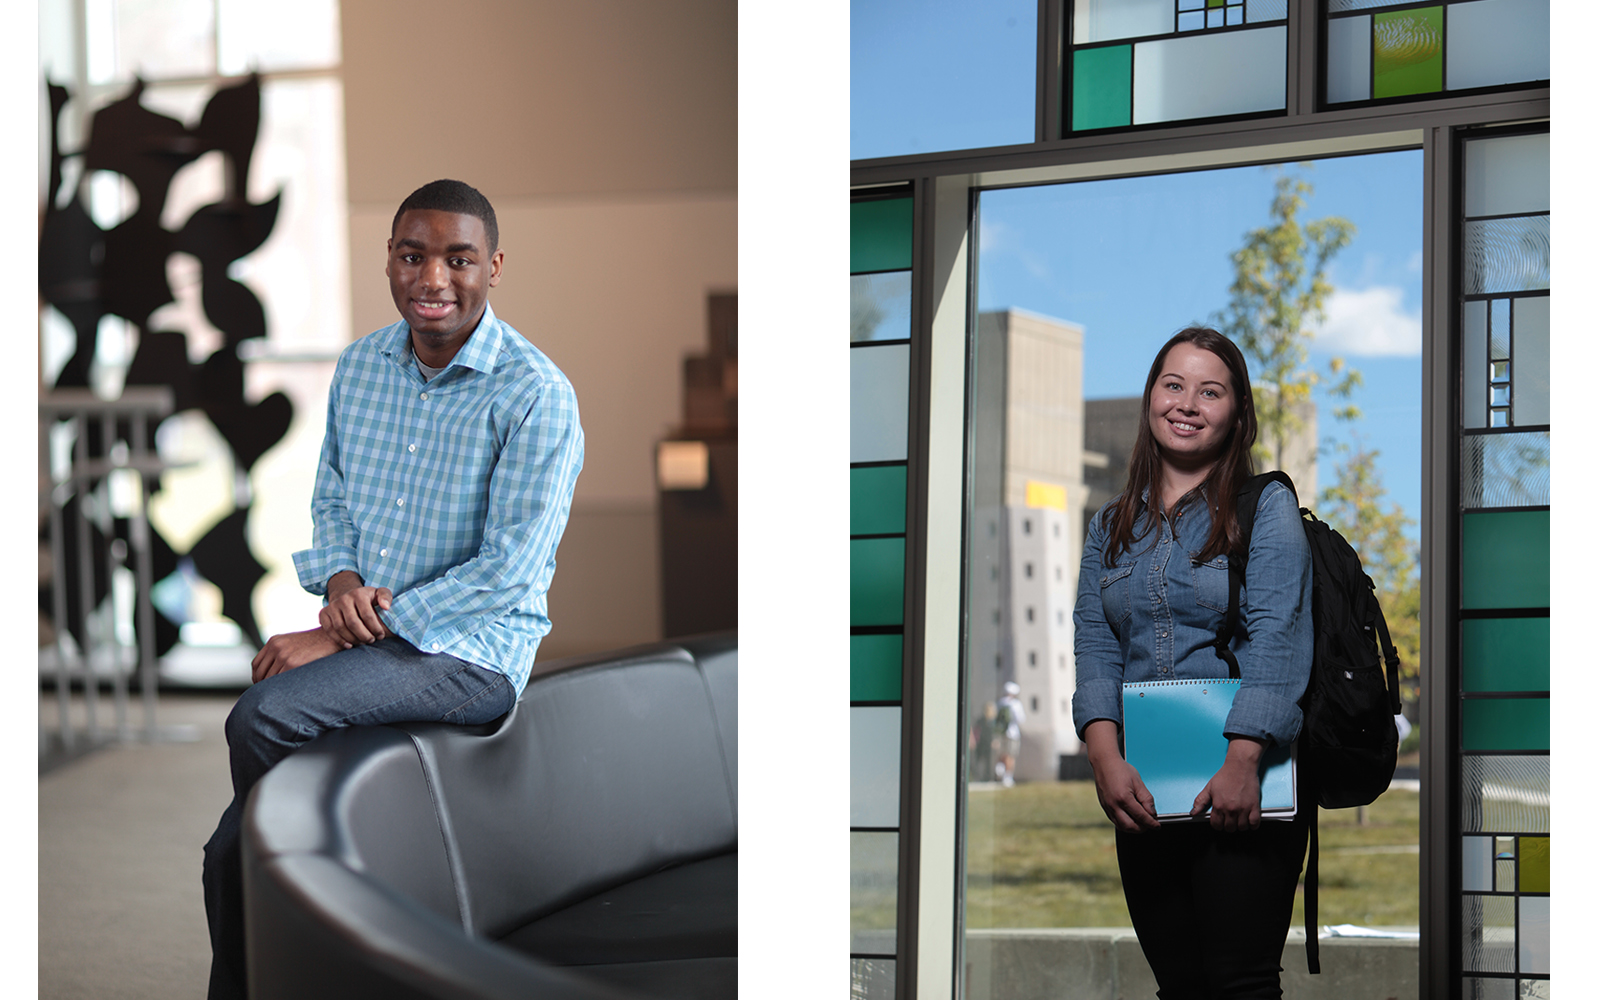 Alumni Quian Callender '16 and Kamila Magiera '16 say scholarships gave them the chance to learn, grow and succeed. (Nathan Oldham/UConn School of Business)